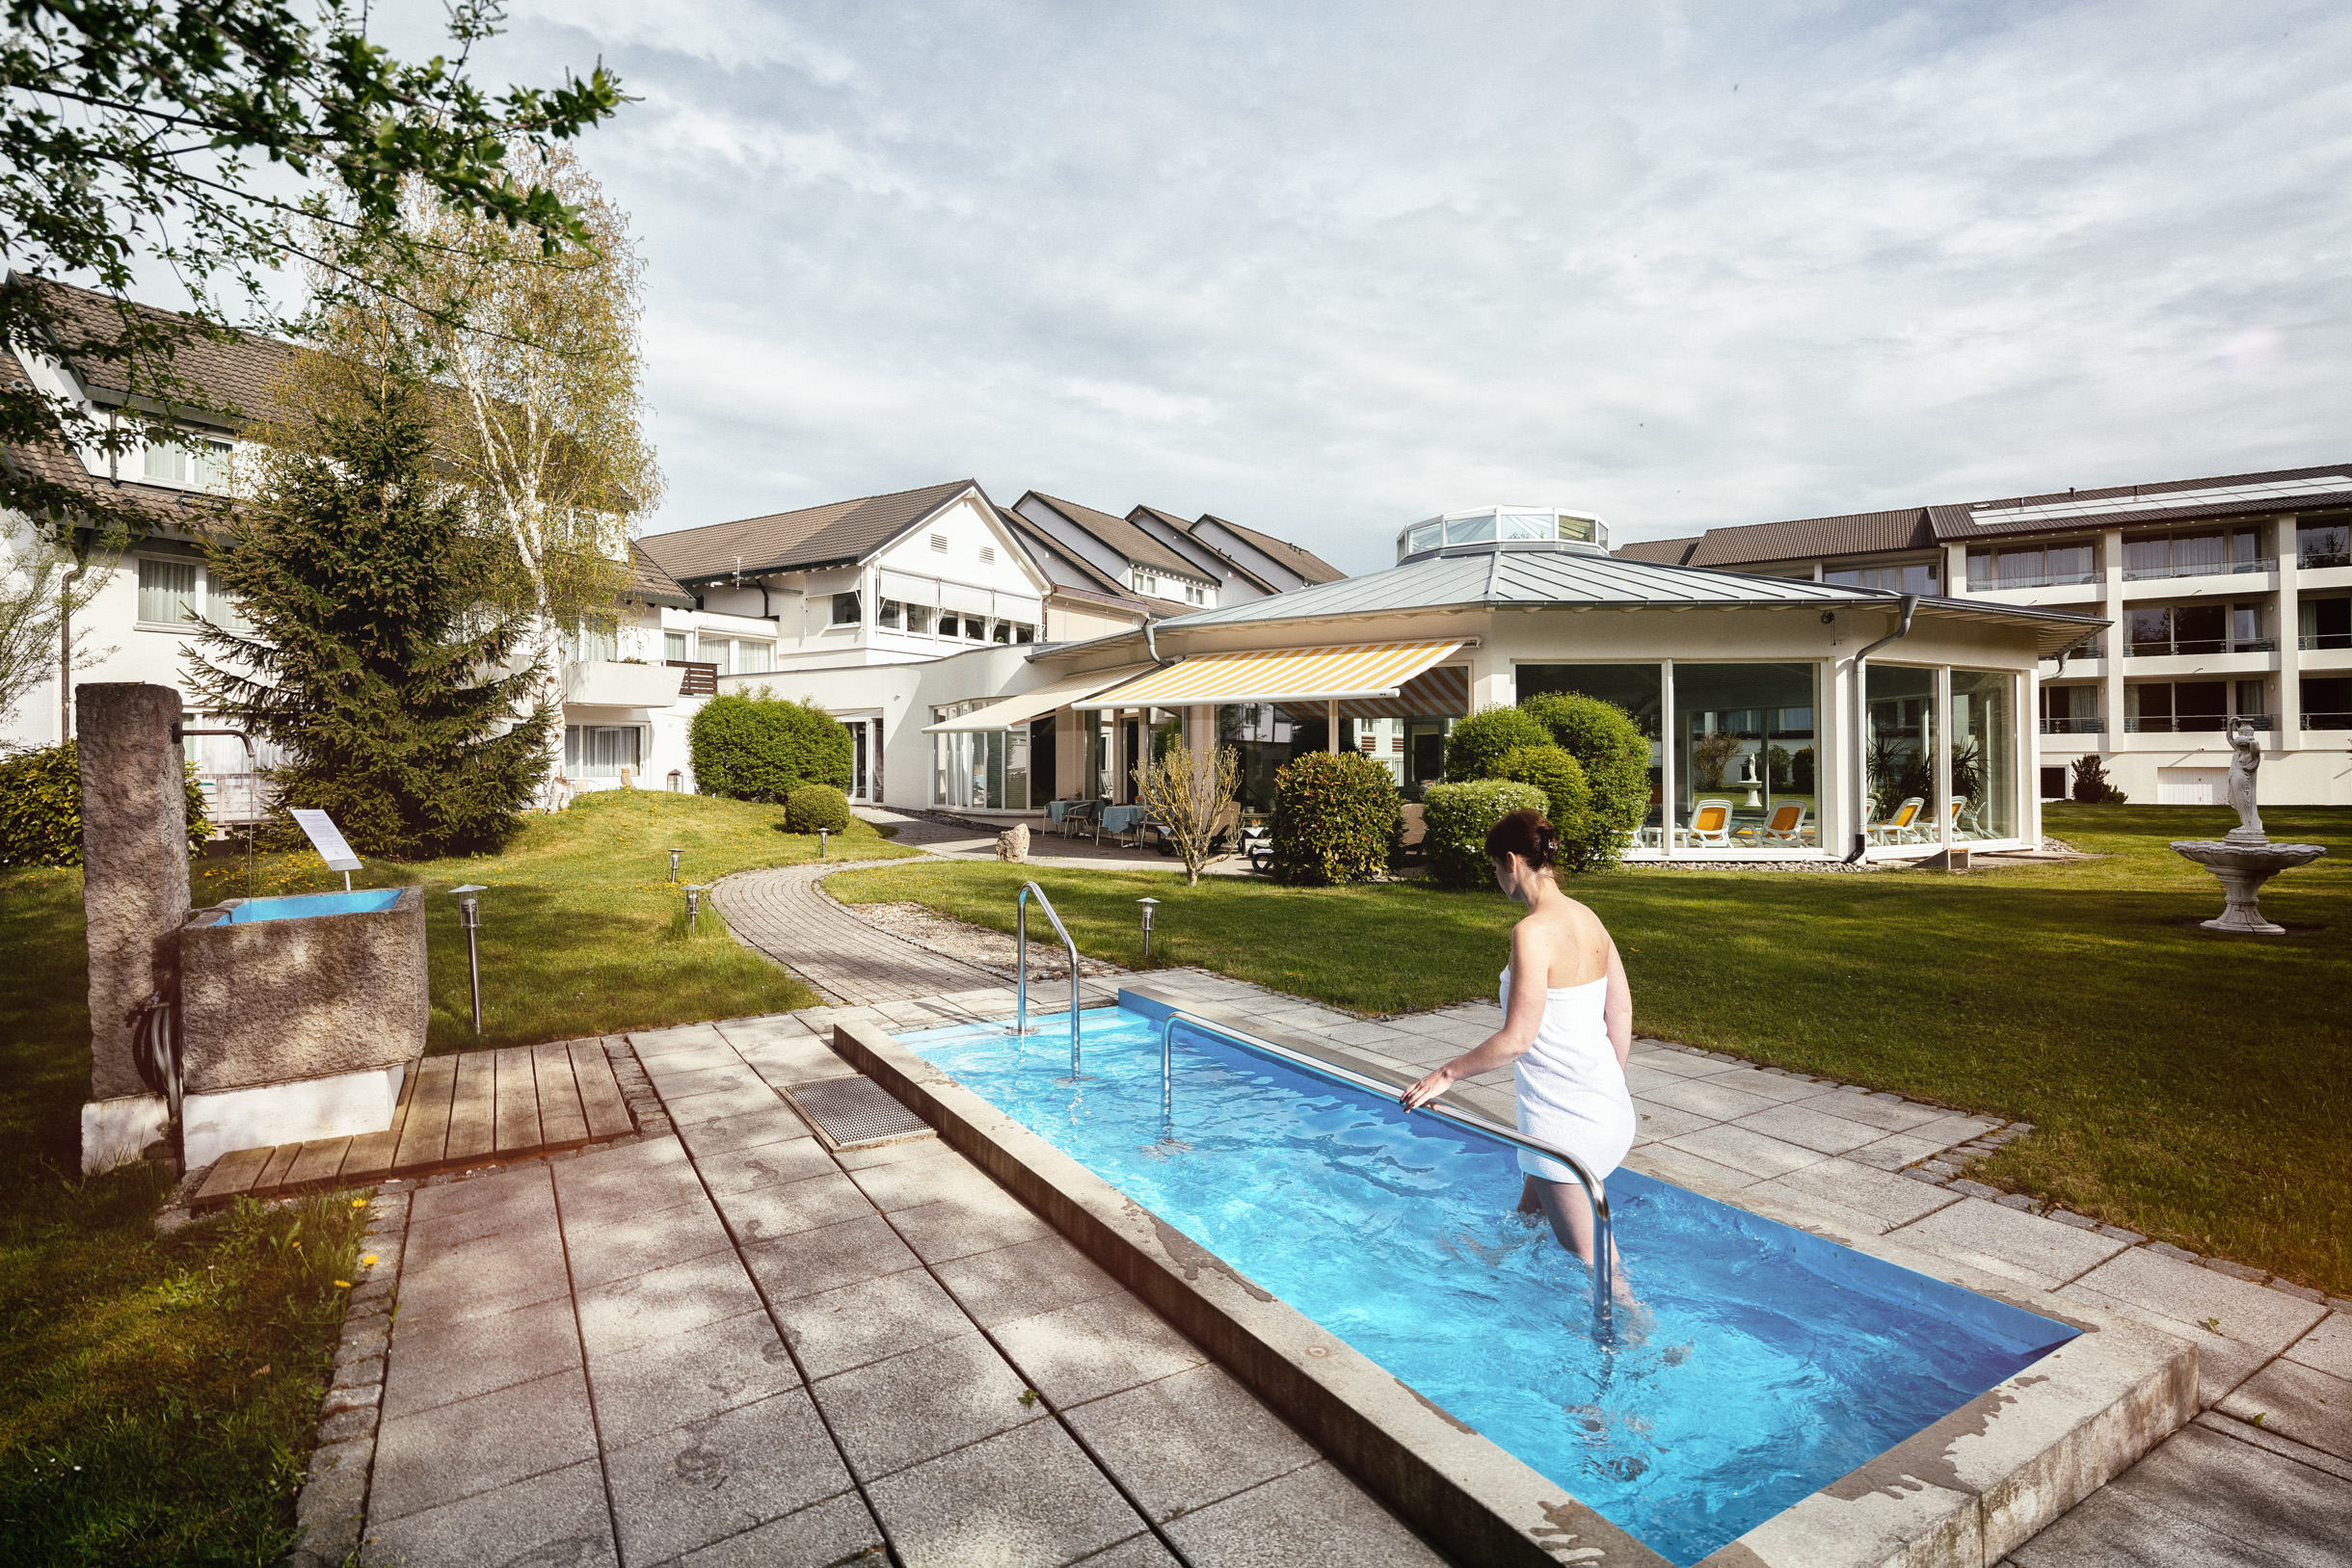 Wellnesshotel Traube Revital Kneippbecken